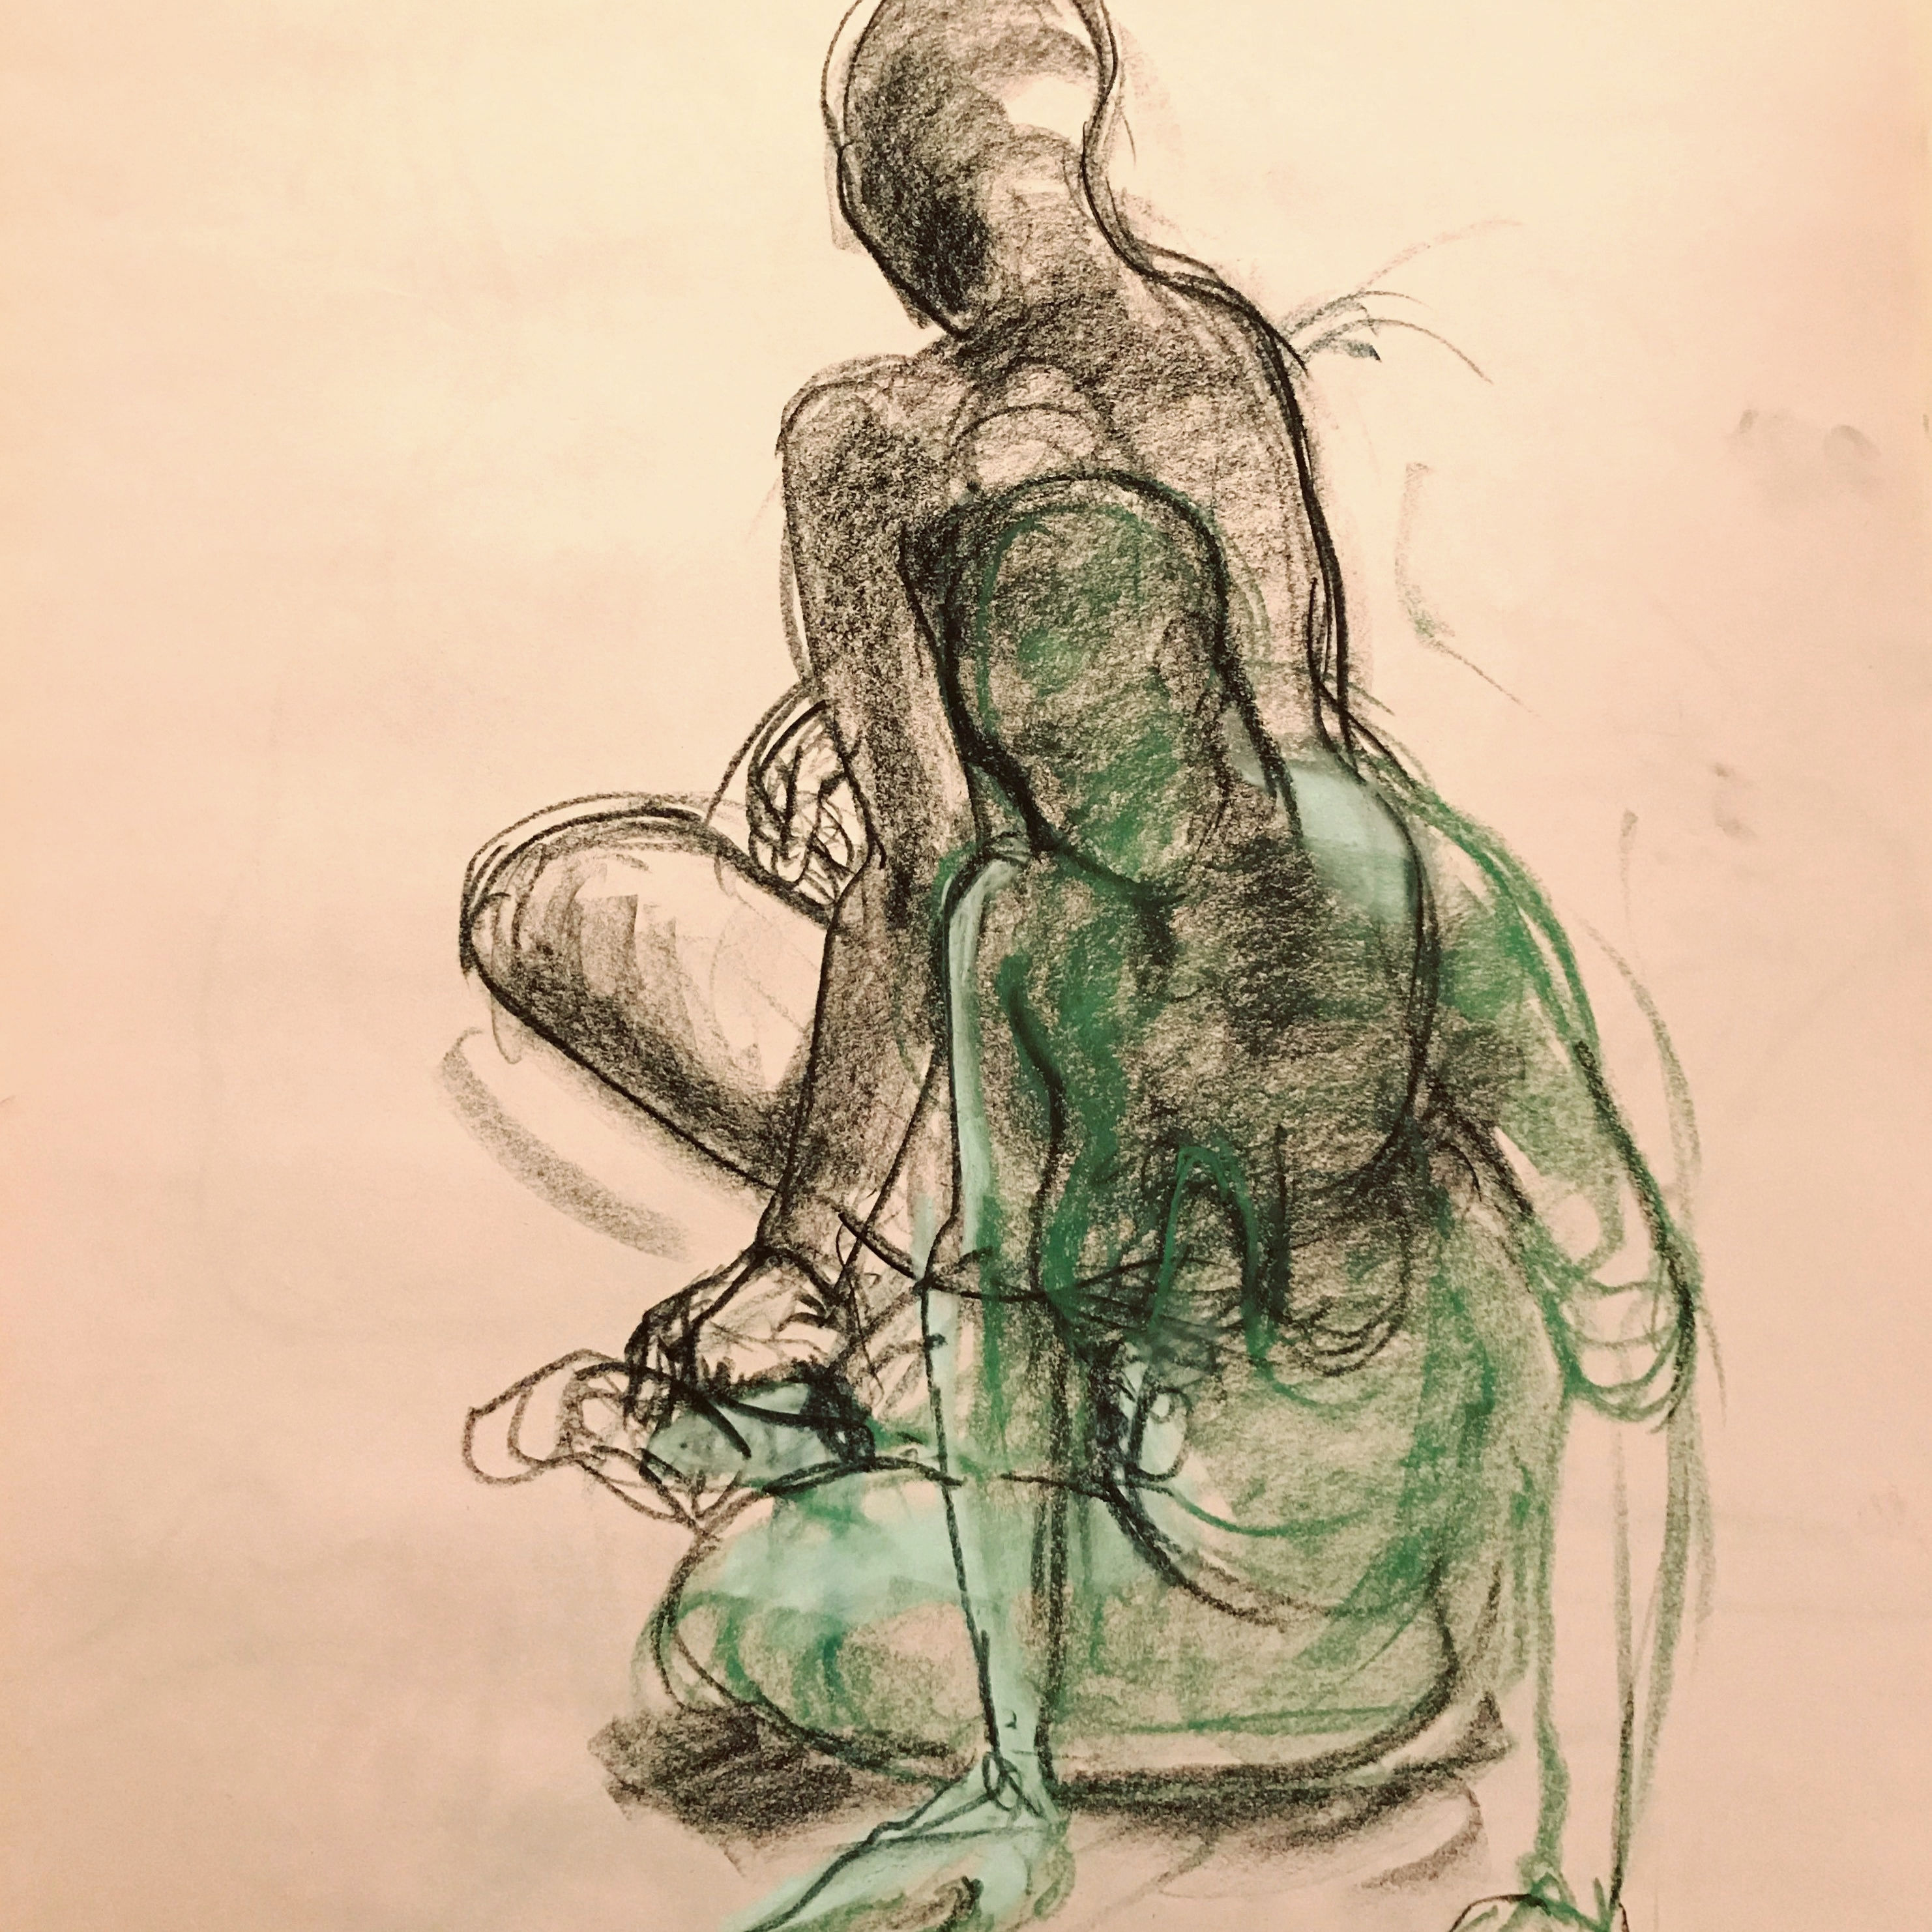 Class Image Foundations of Figure Study: Exploring Gesture through Drawing and Sculpture